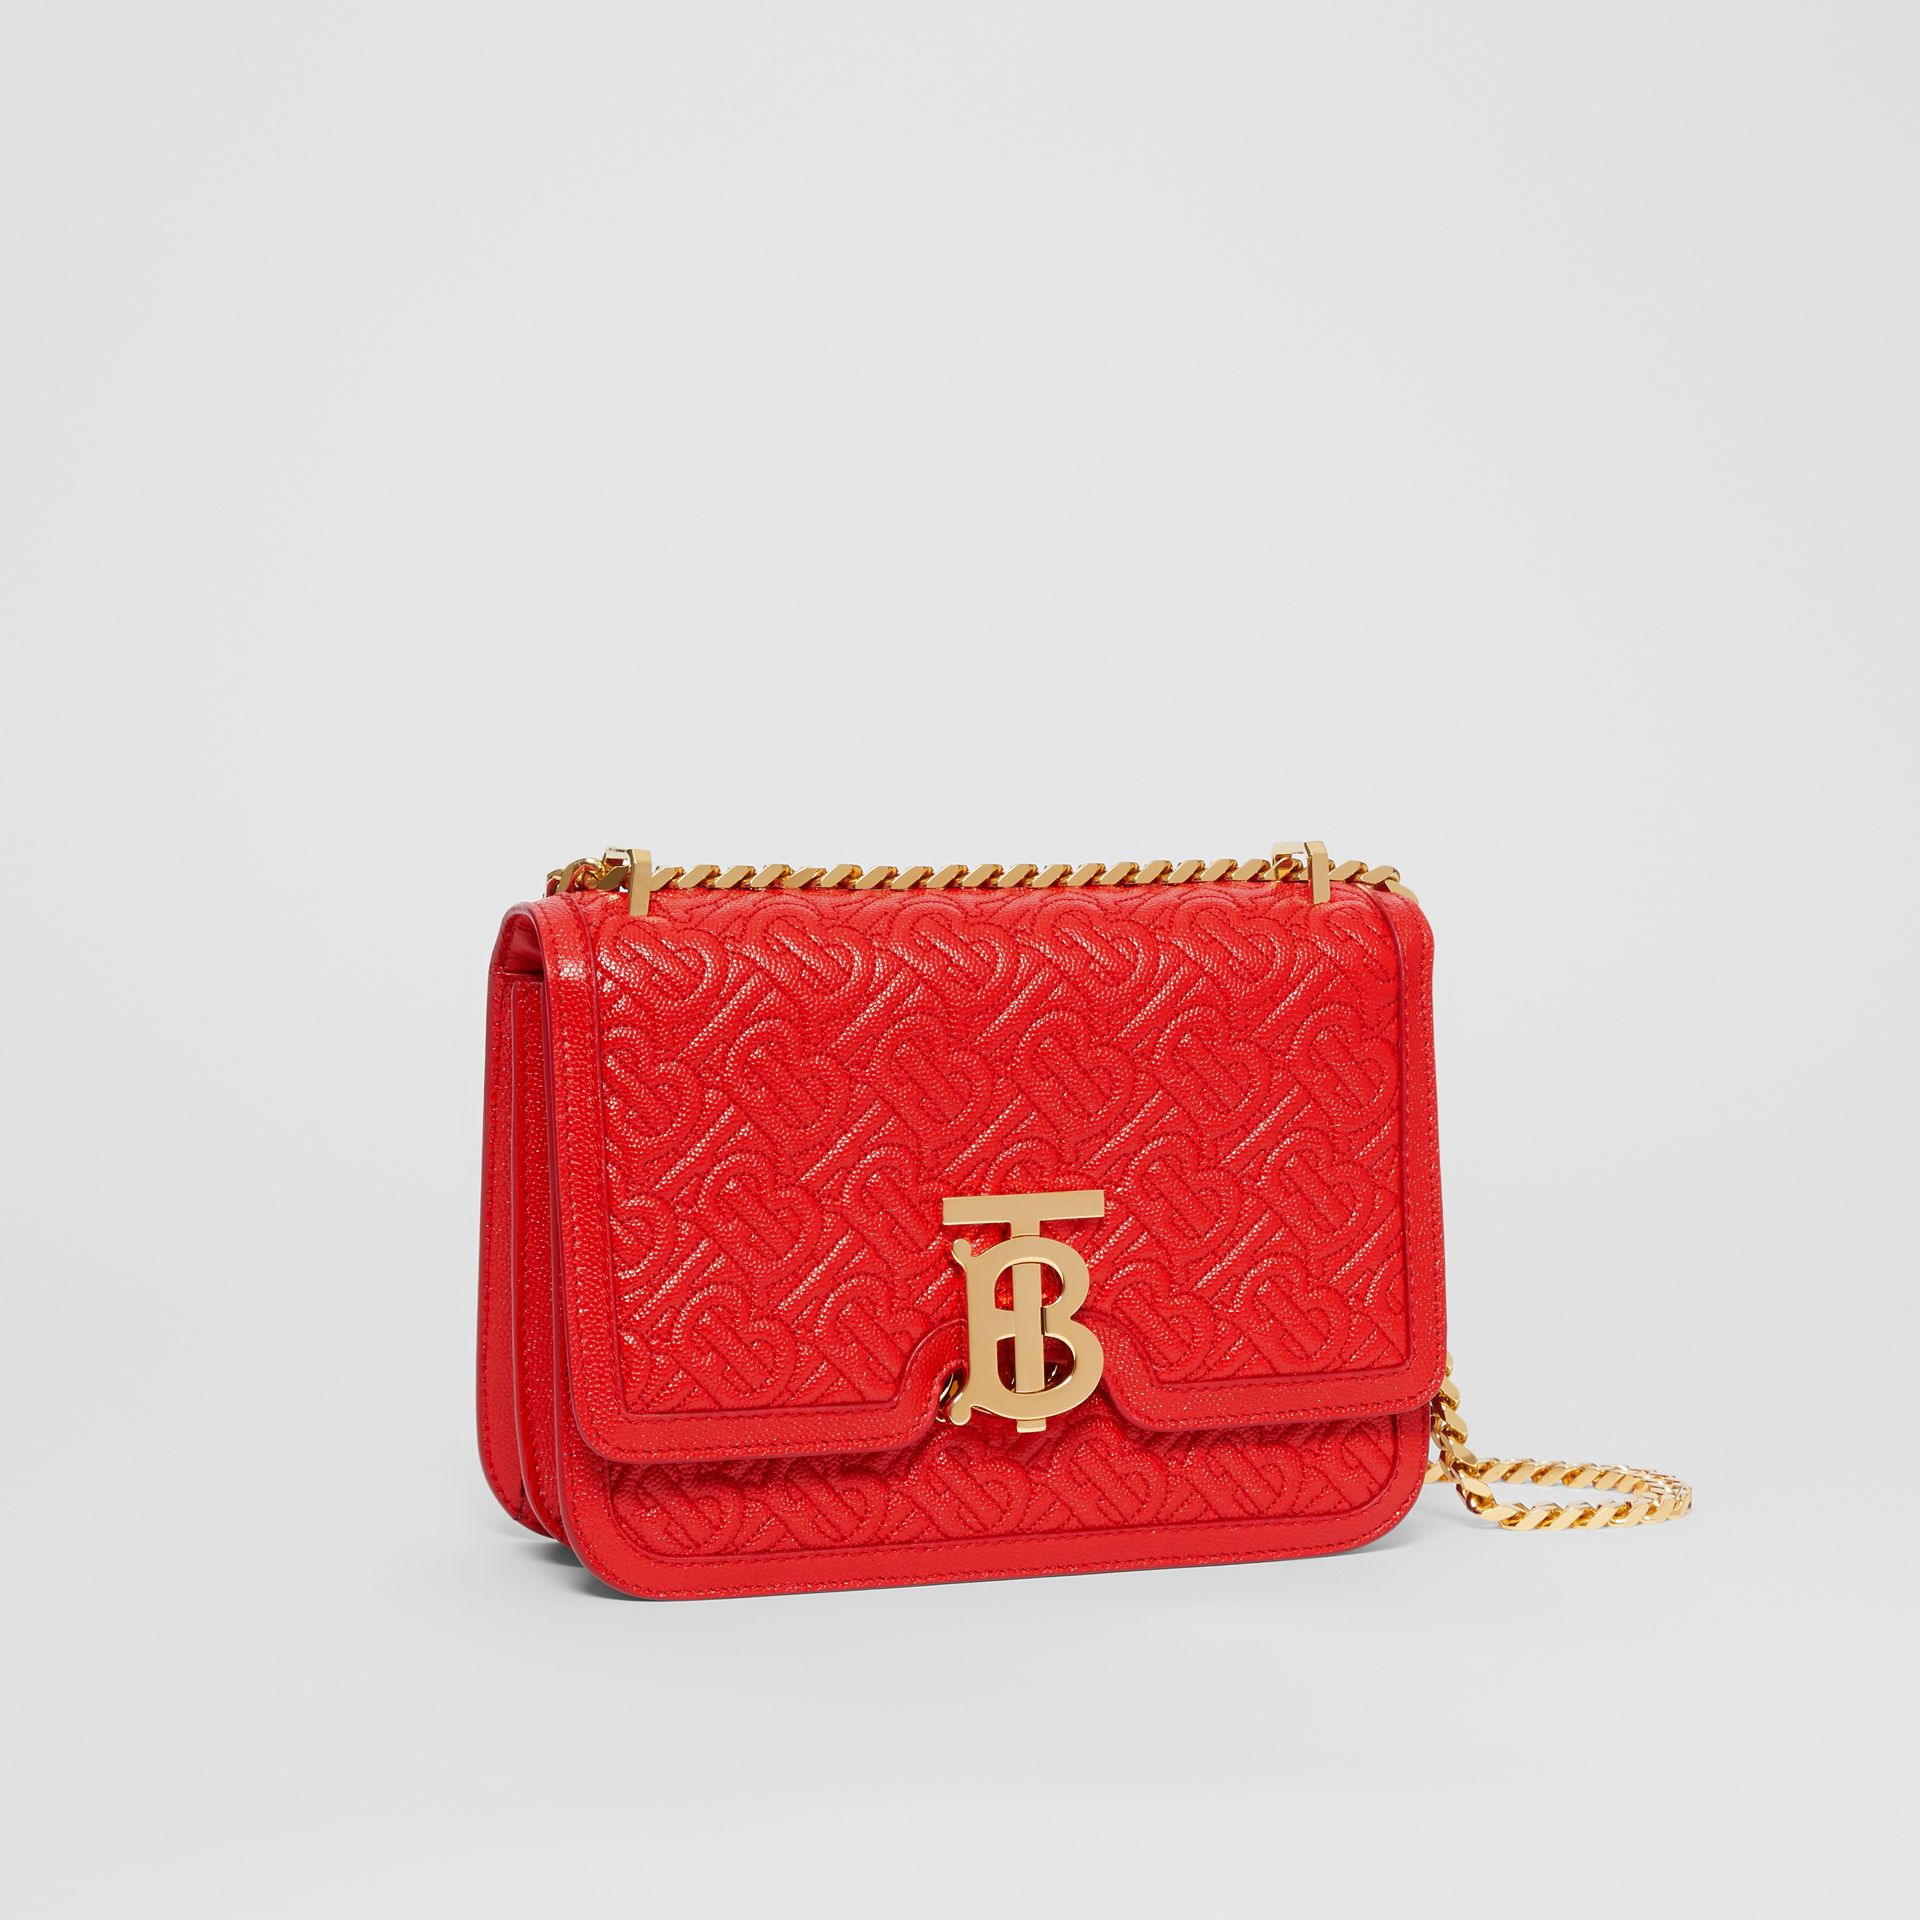 Small Quilted Monogram Leather TB Bag in Bright Red - Women | Burberry United States - gallery image 6